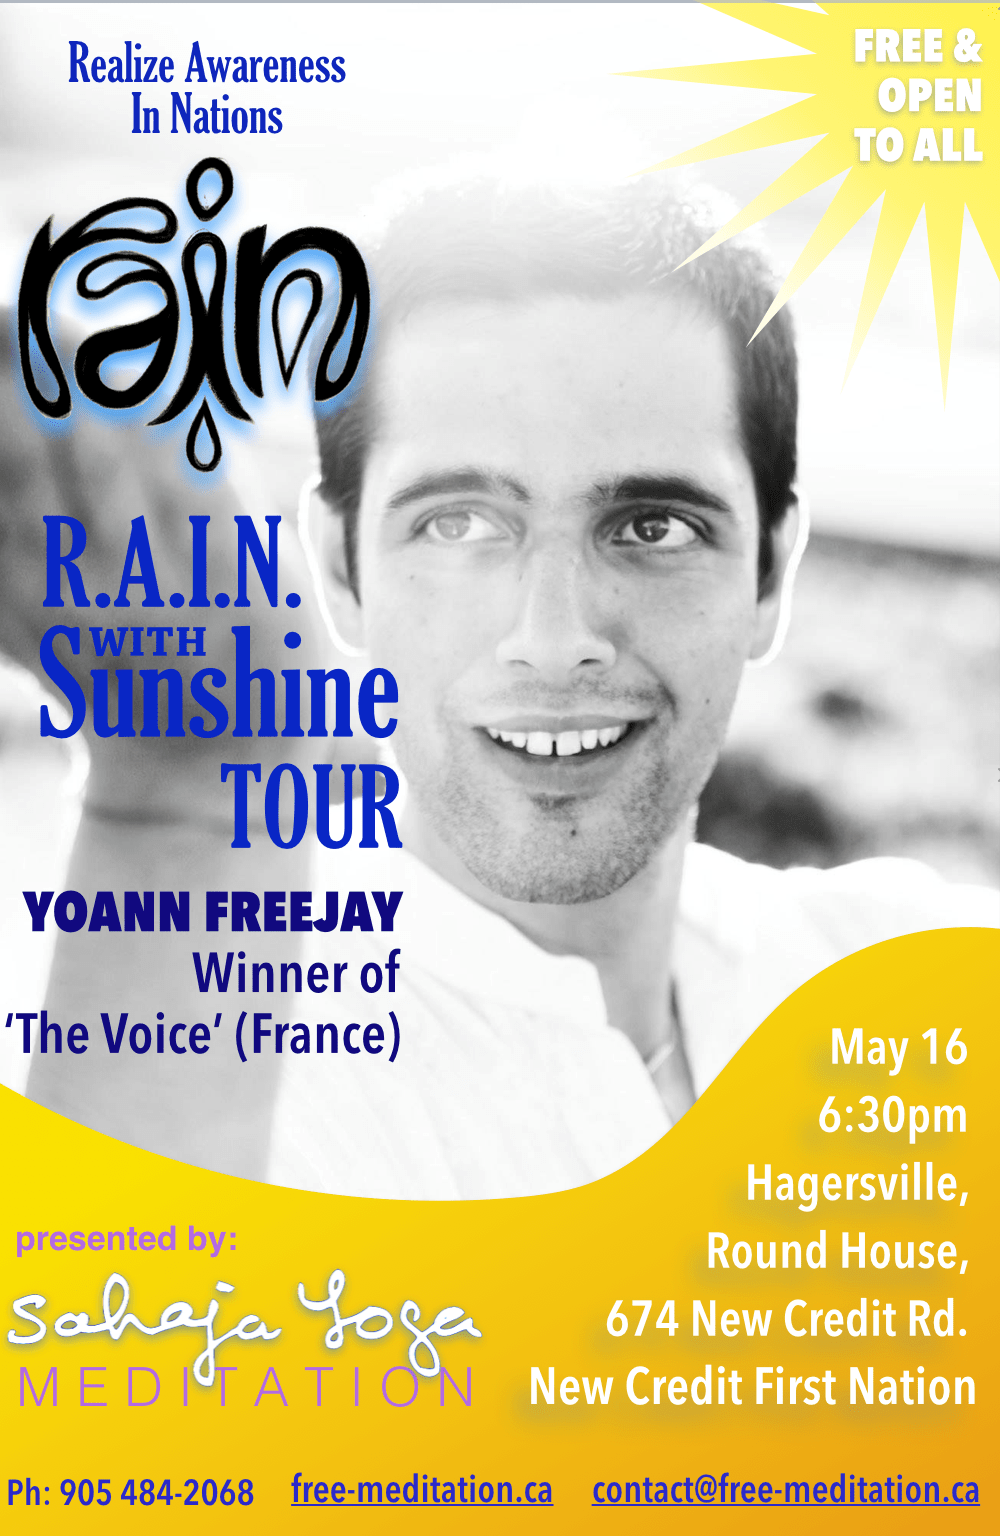 (#1) R.A.I.N. with SunShine Tour: The Voice of France is Singing @ RoundHouse  (R.A.I.N. TO HEAL M.E. -> Mother Earth)